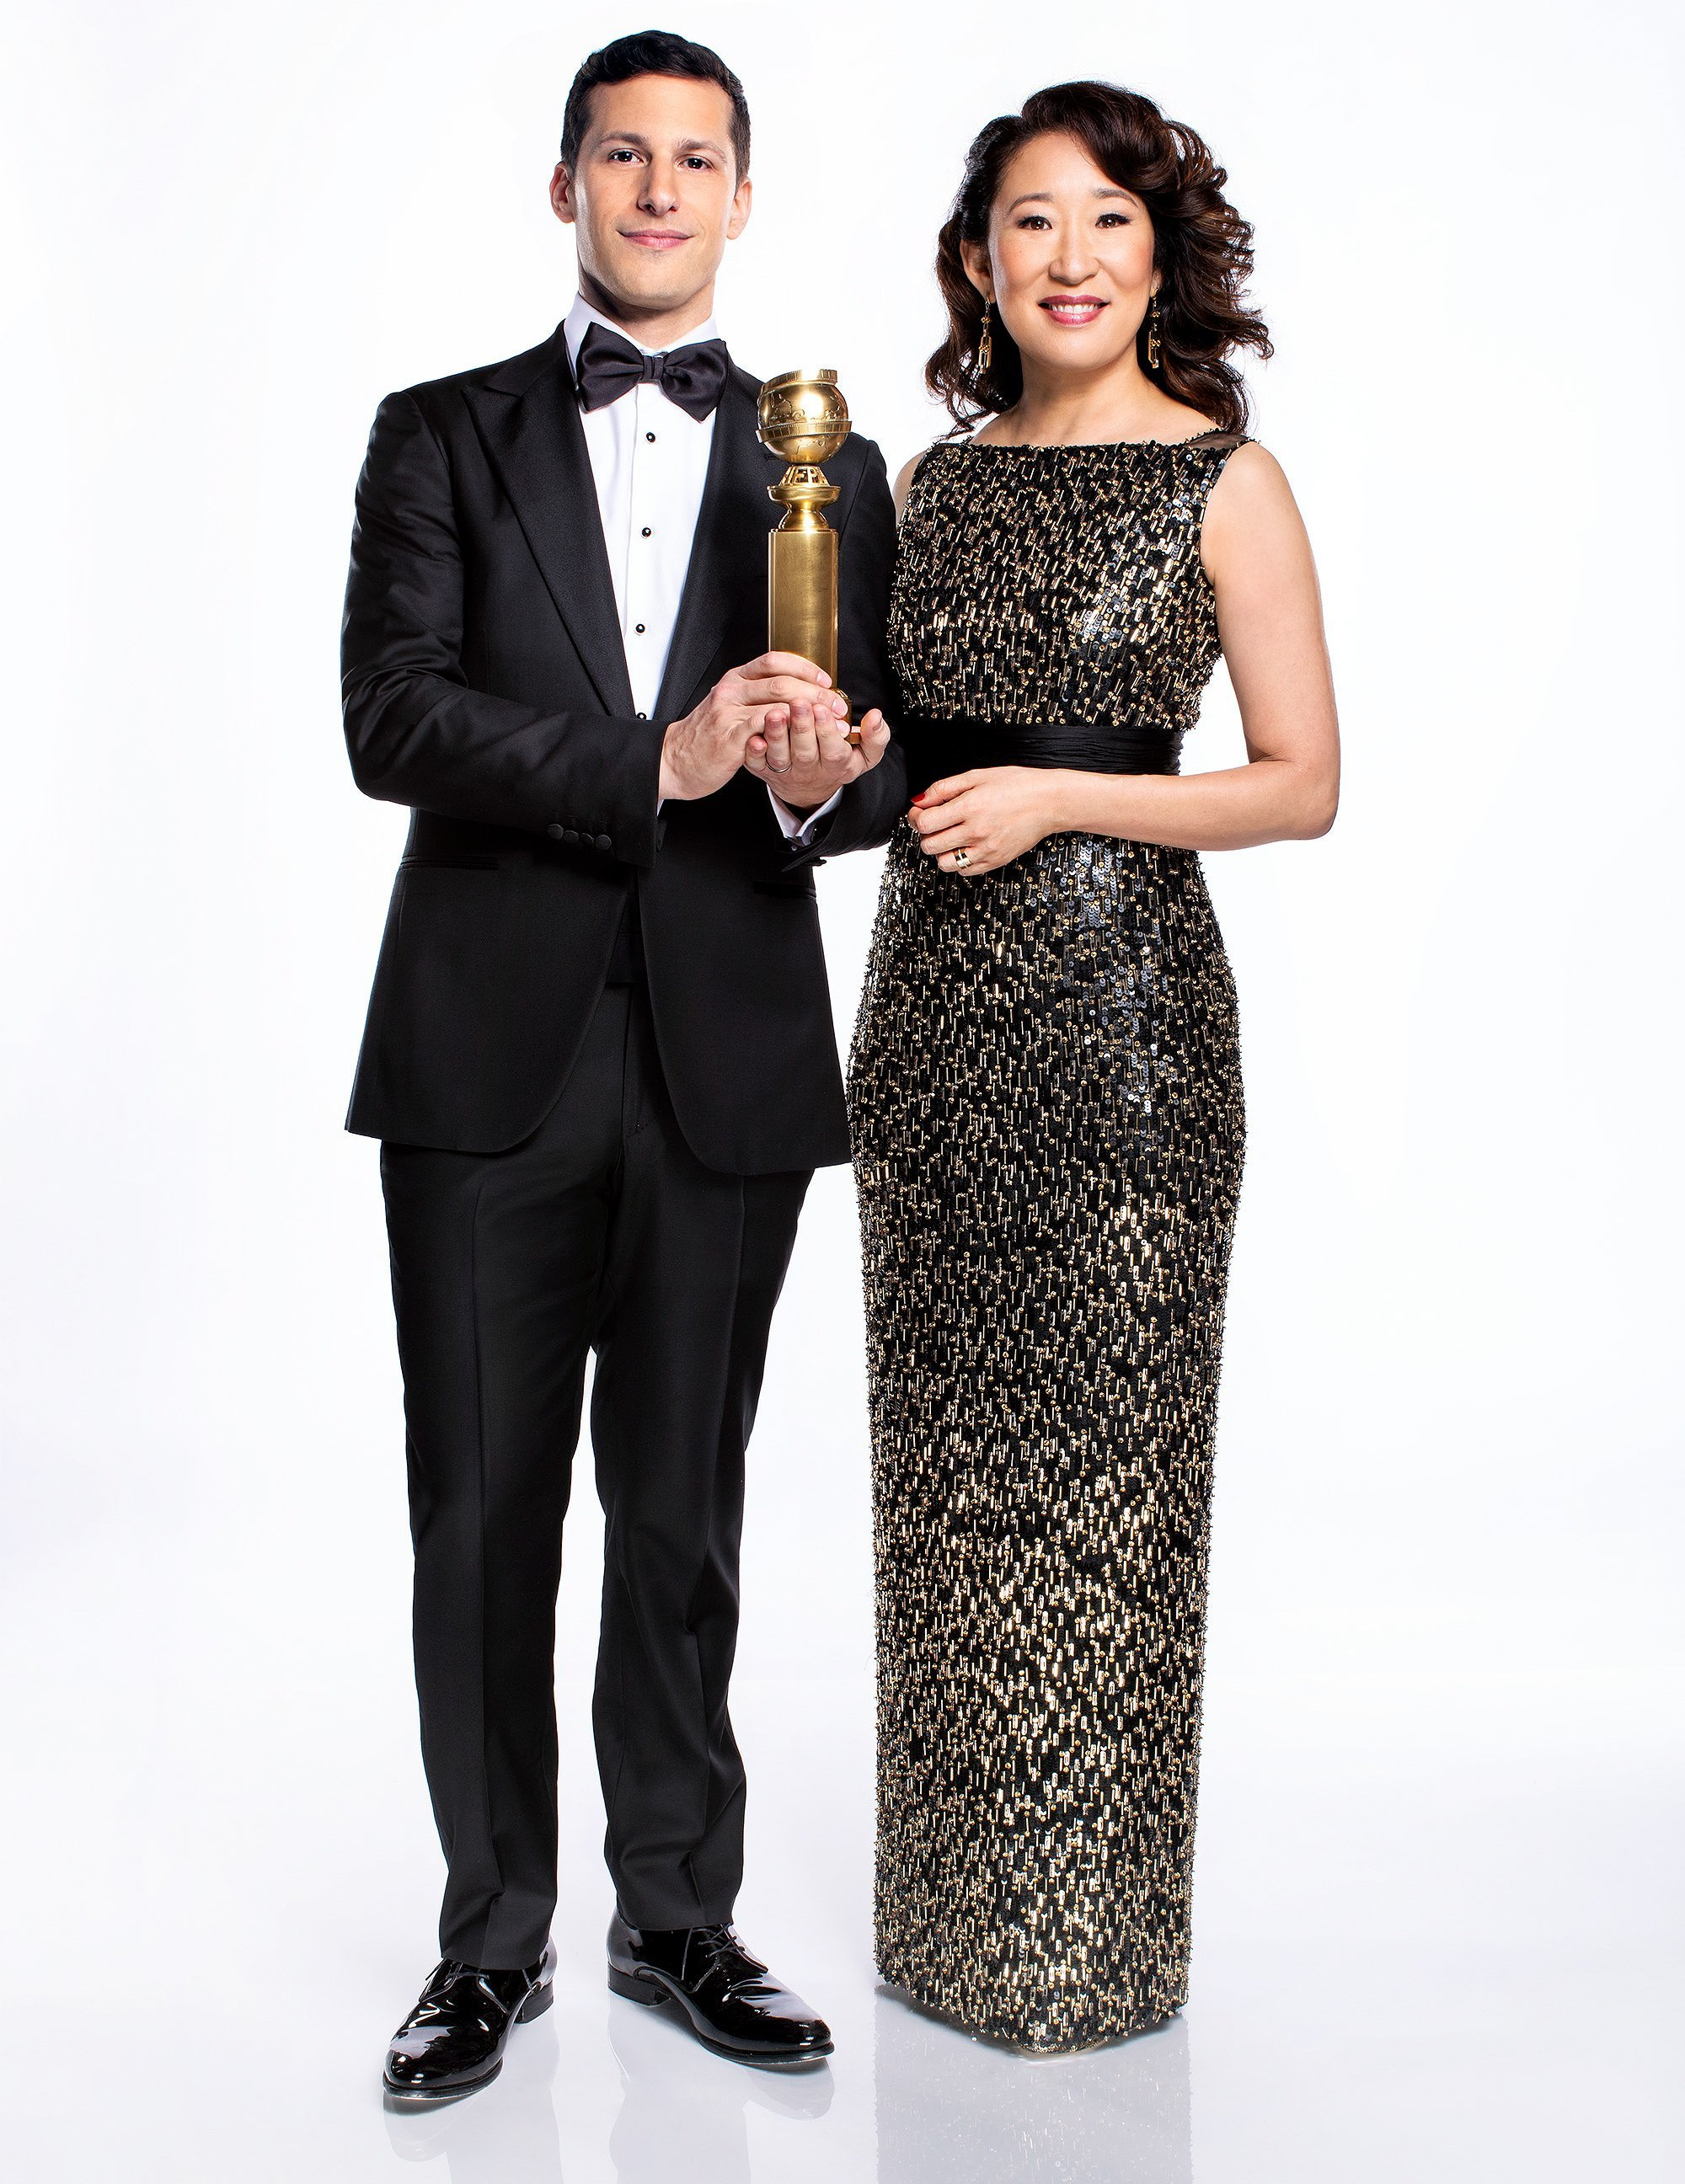 Golden Globes 2019: Everything You Need to Know About the 76th Annual Awards